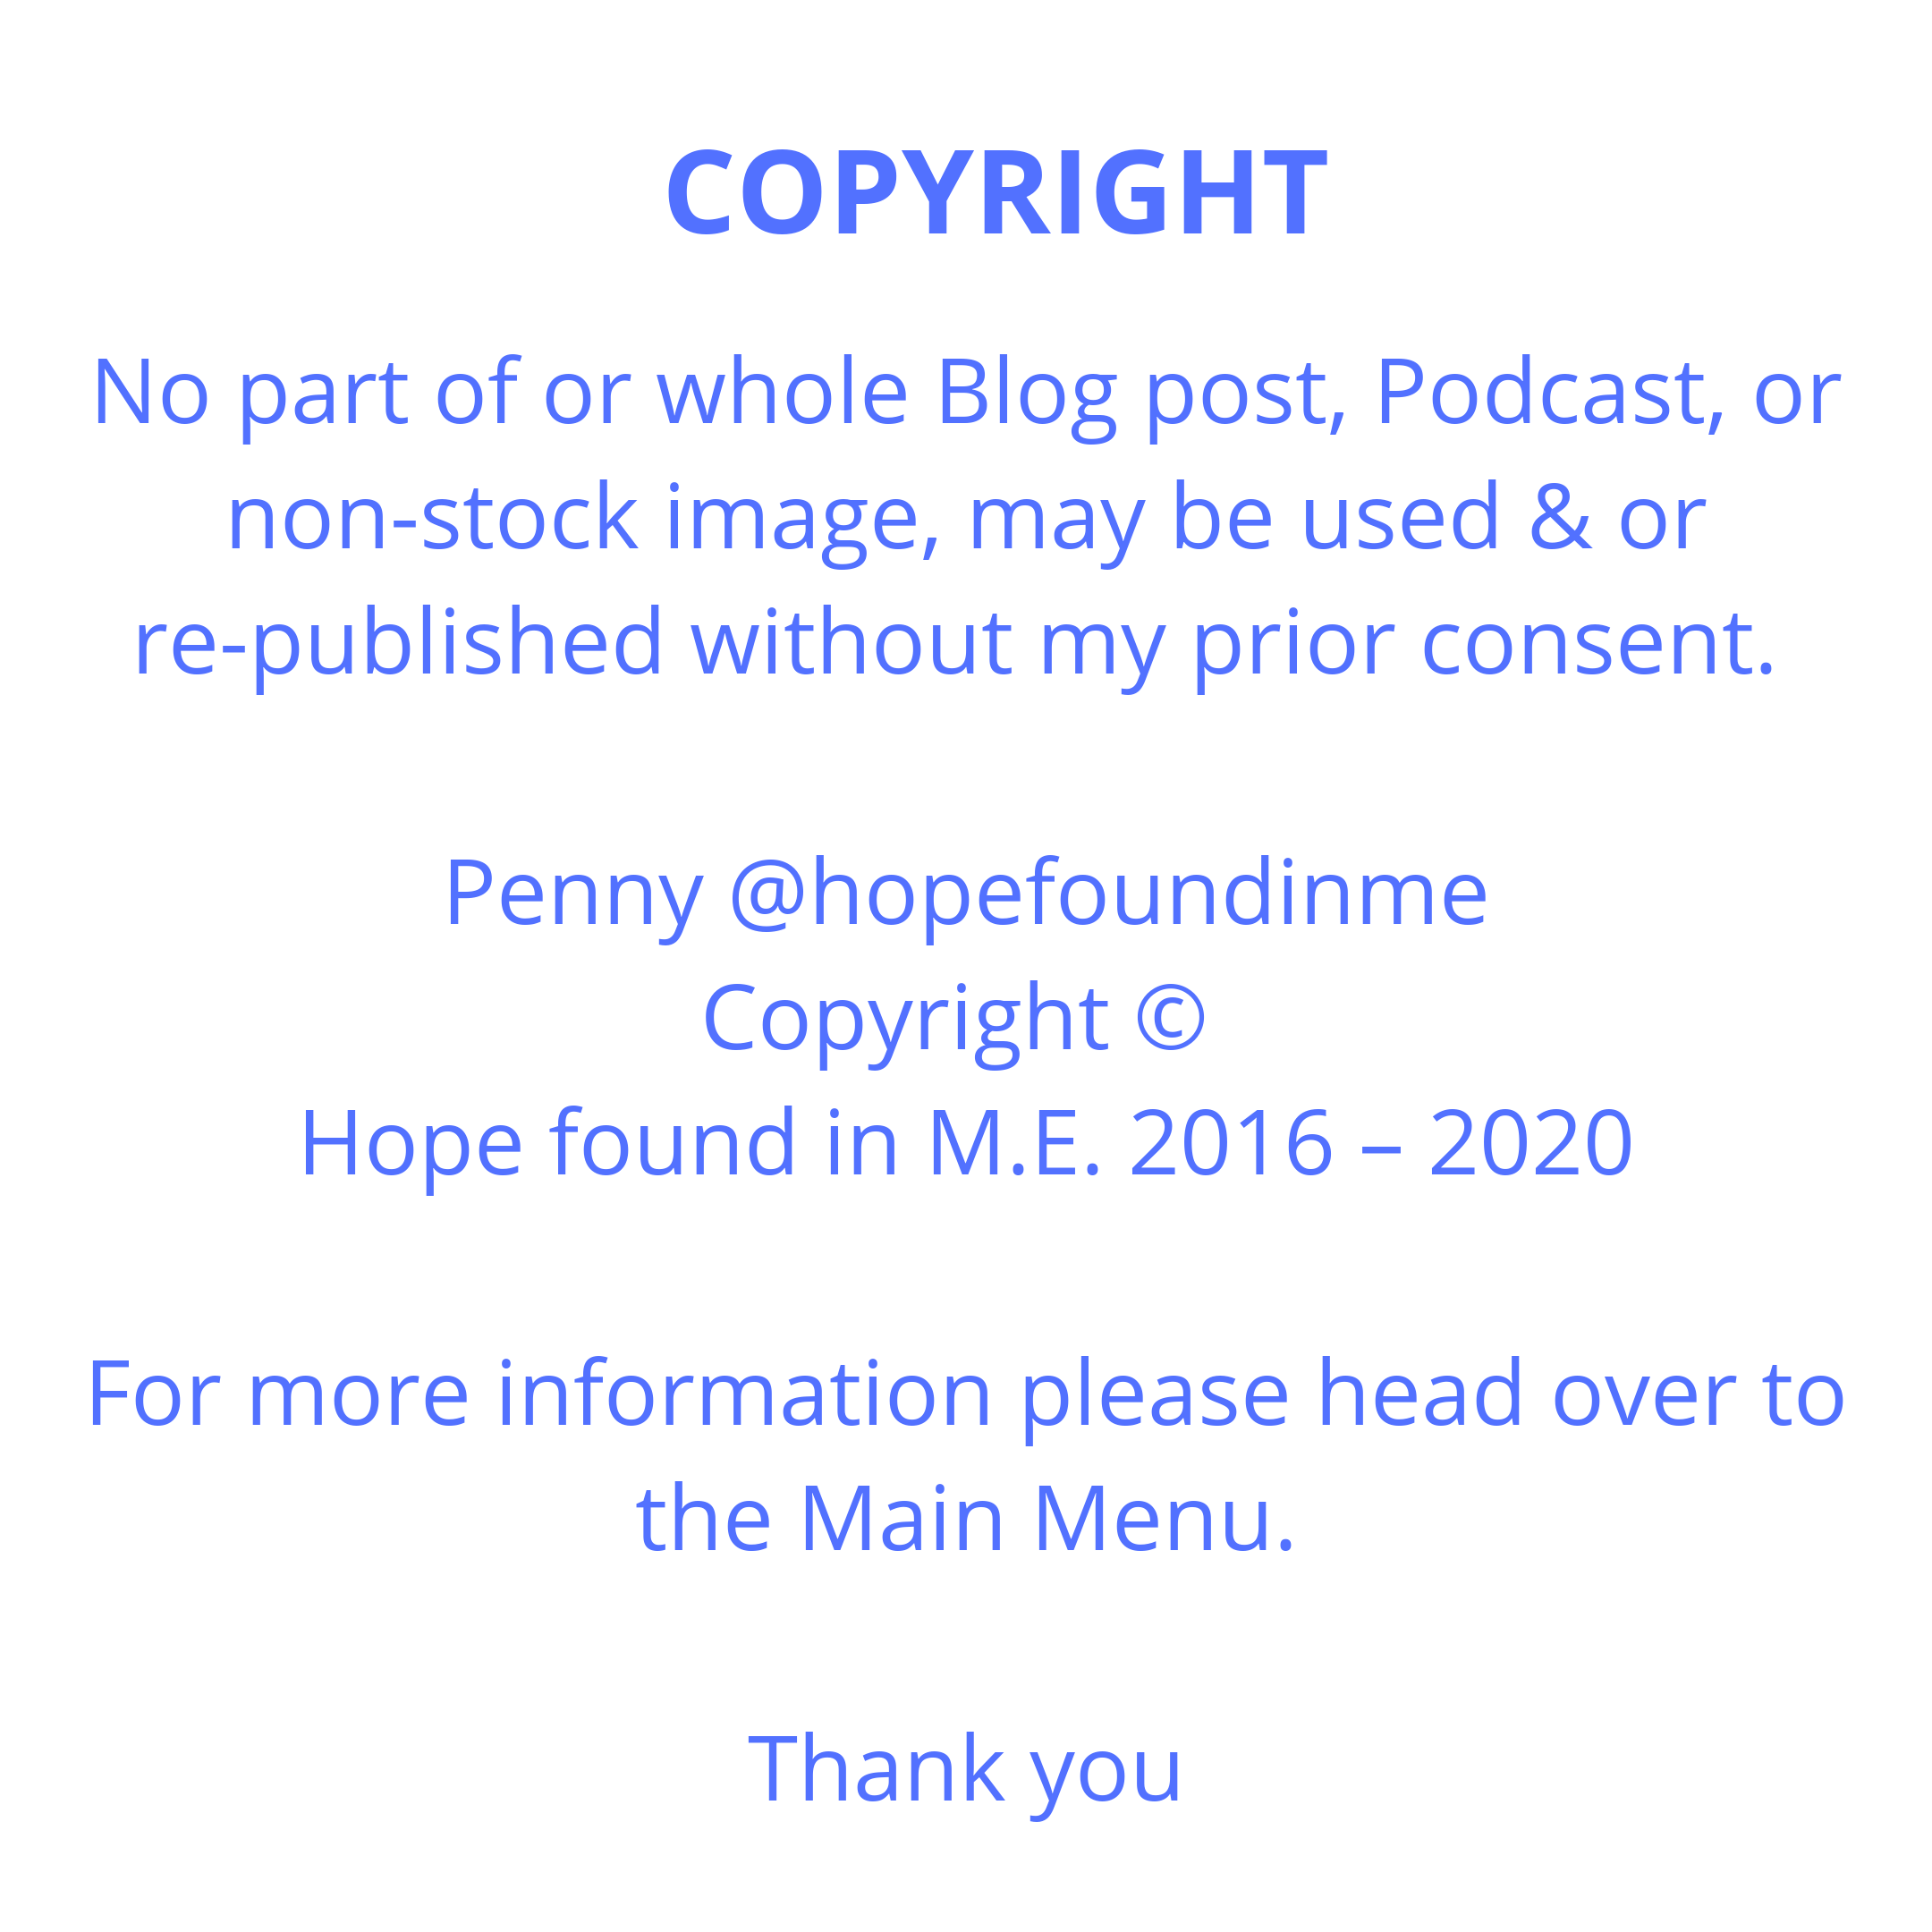 Copyright Notice for this website